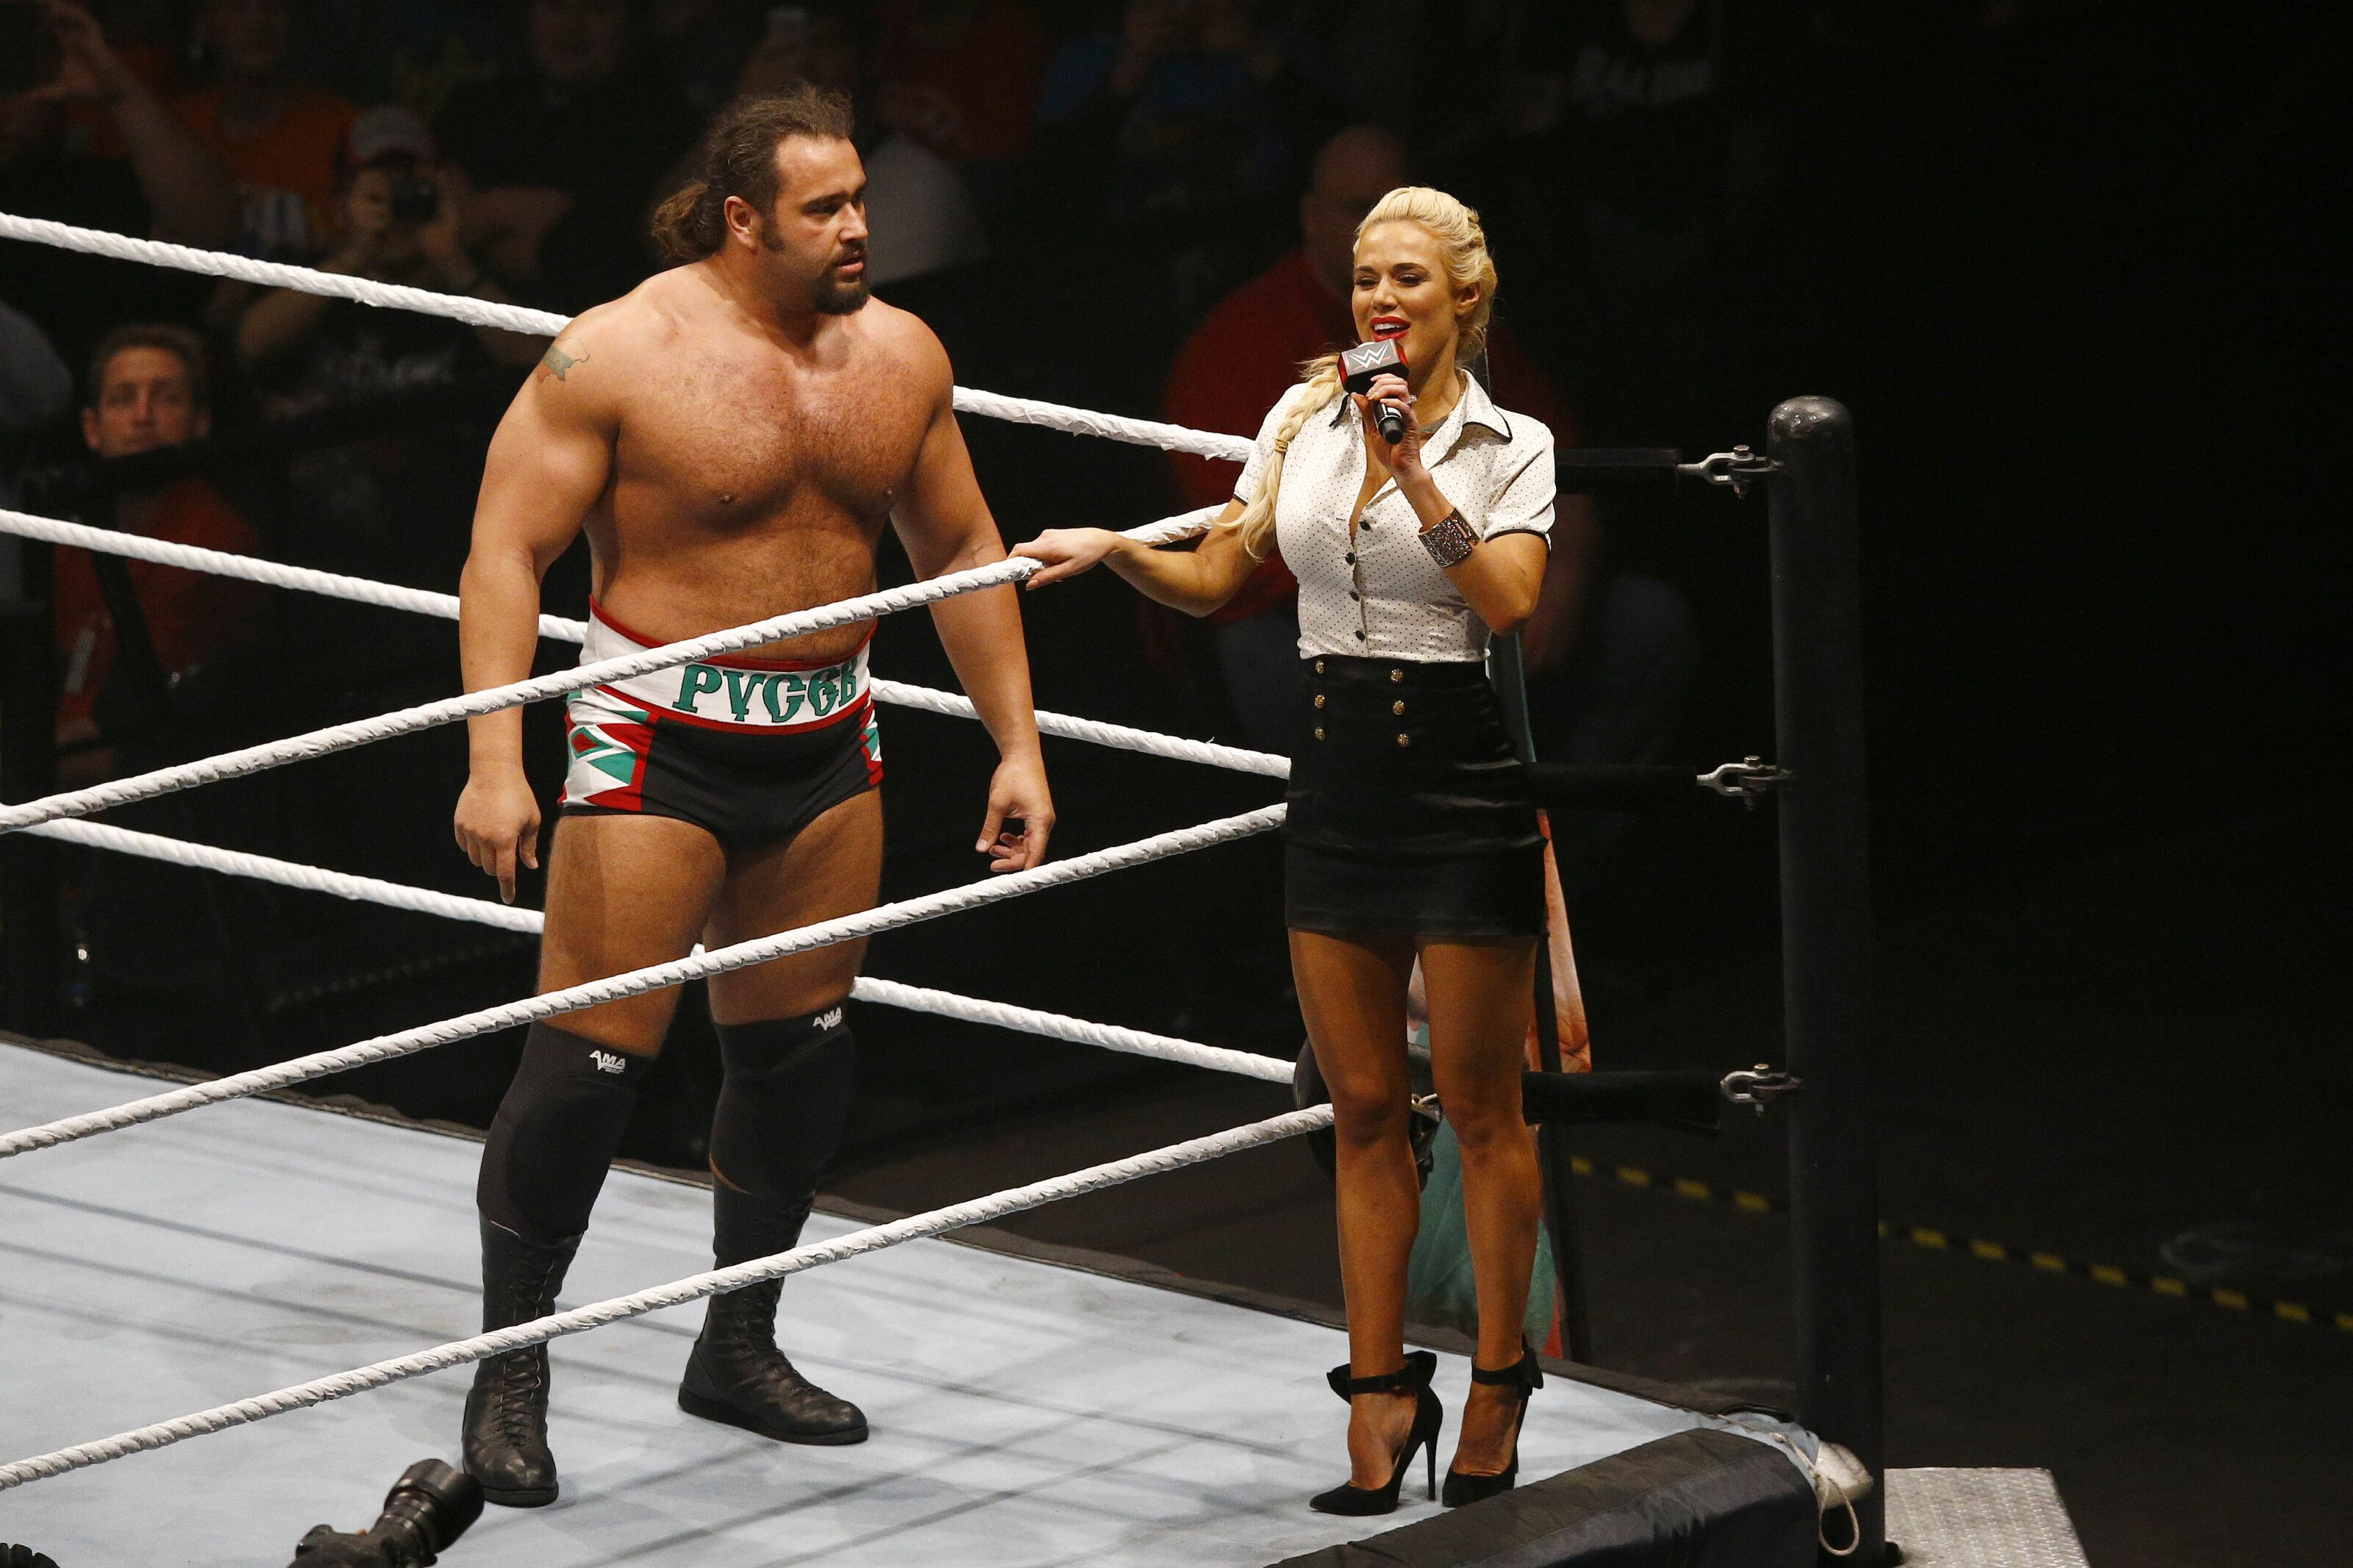 WWE: Rusev and Lana work better together than apart